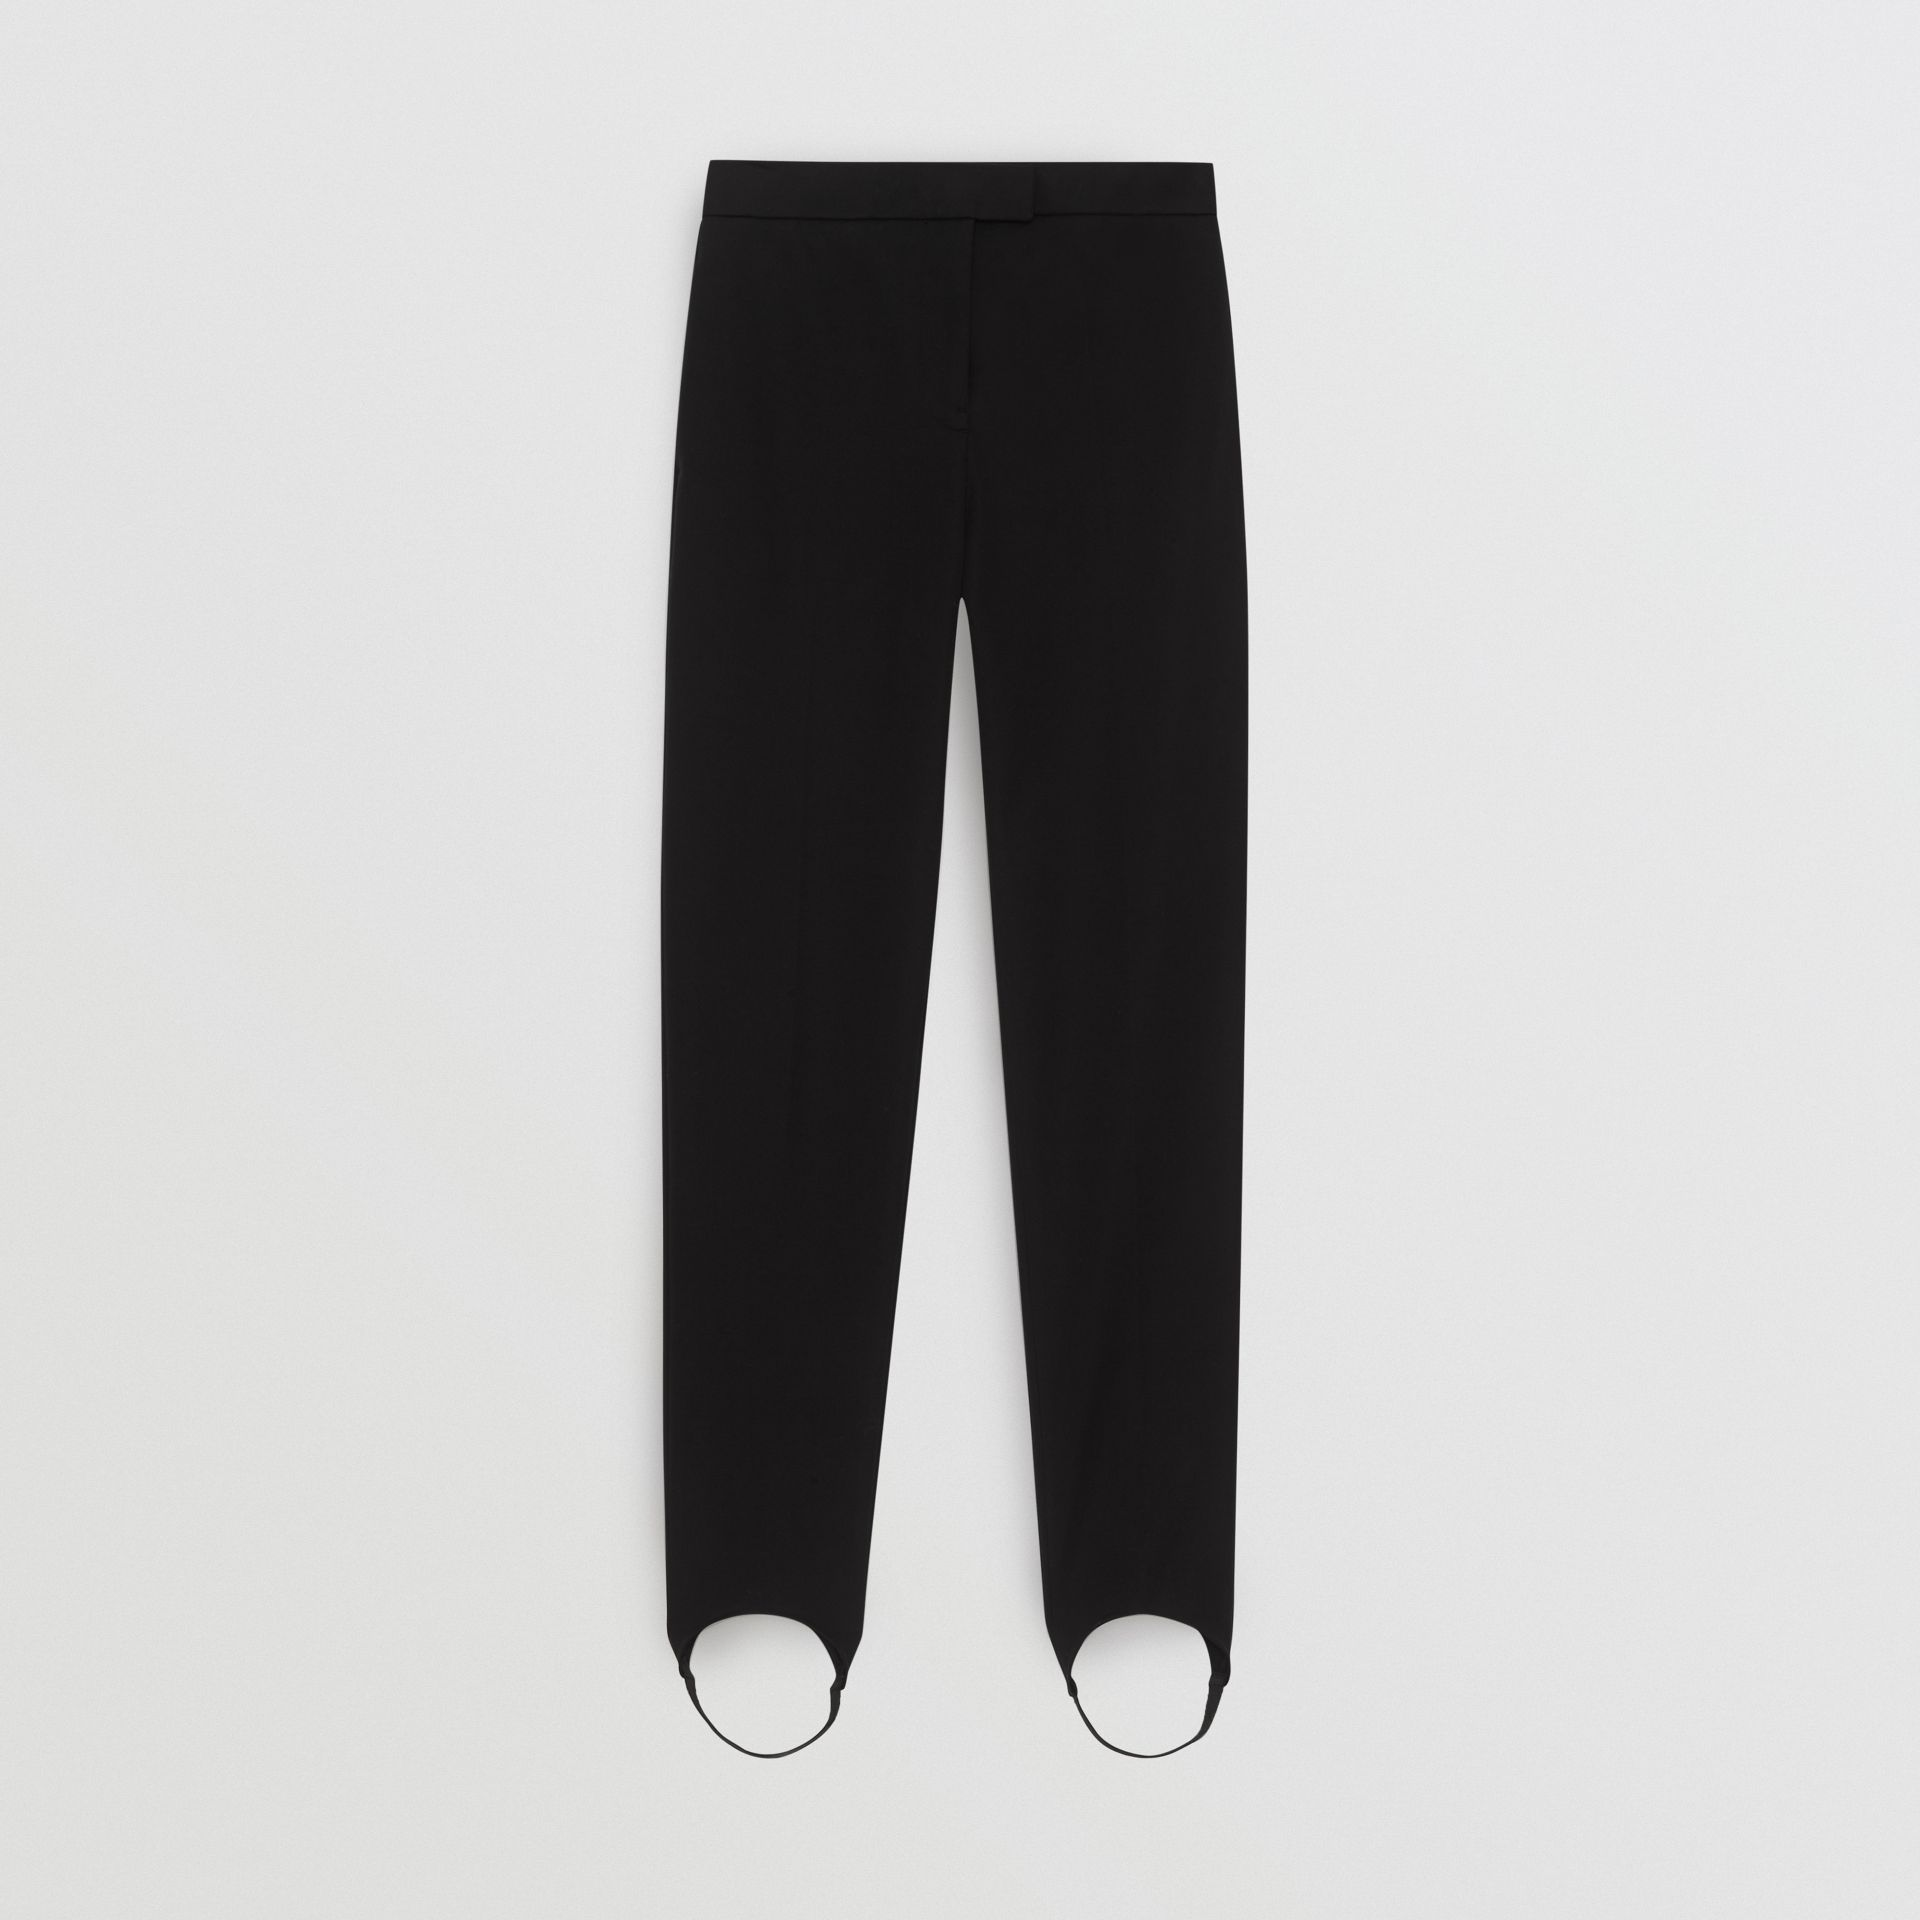 Cotton Blend Tailored Jodhpurs in Black - Women | Burberry United States - gallery image 3